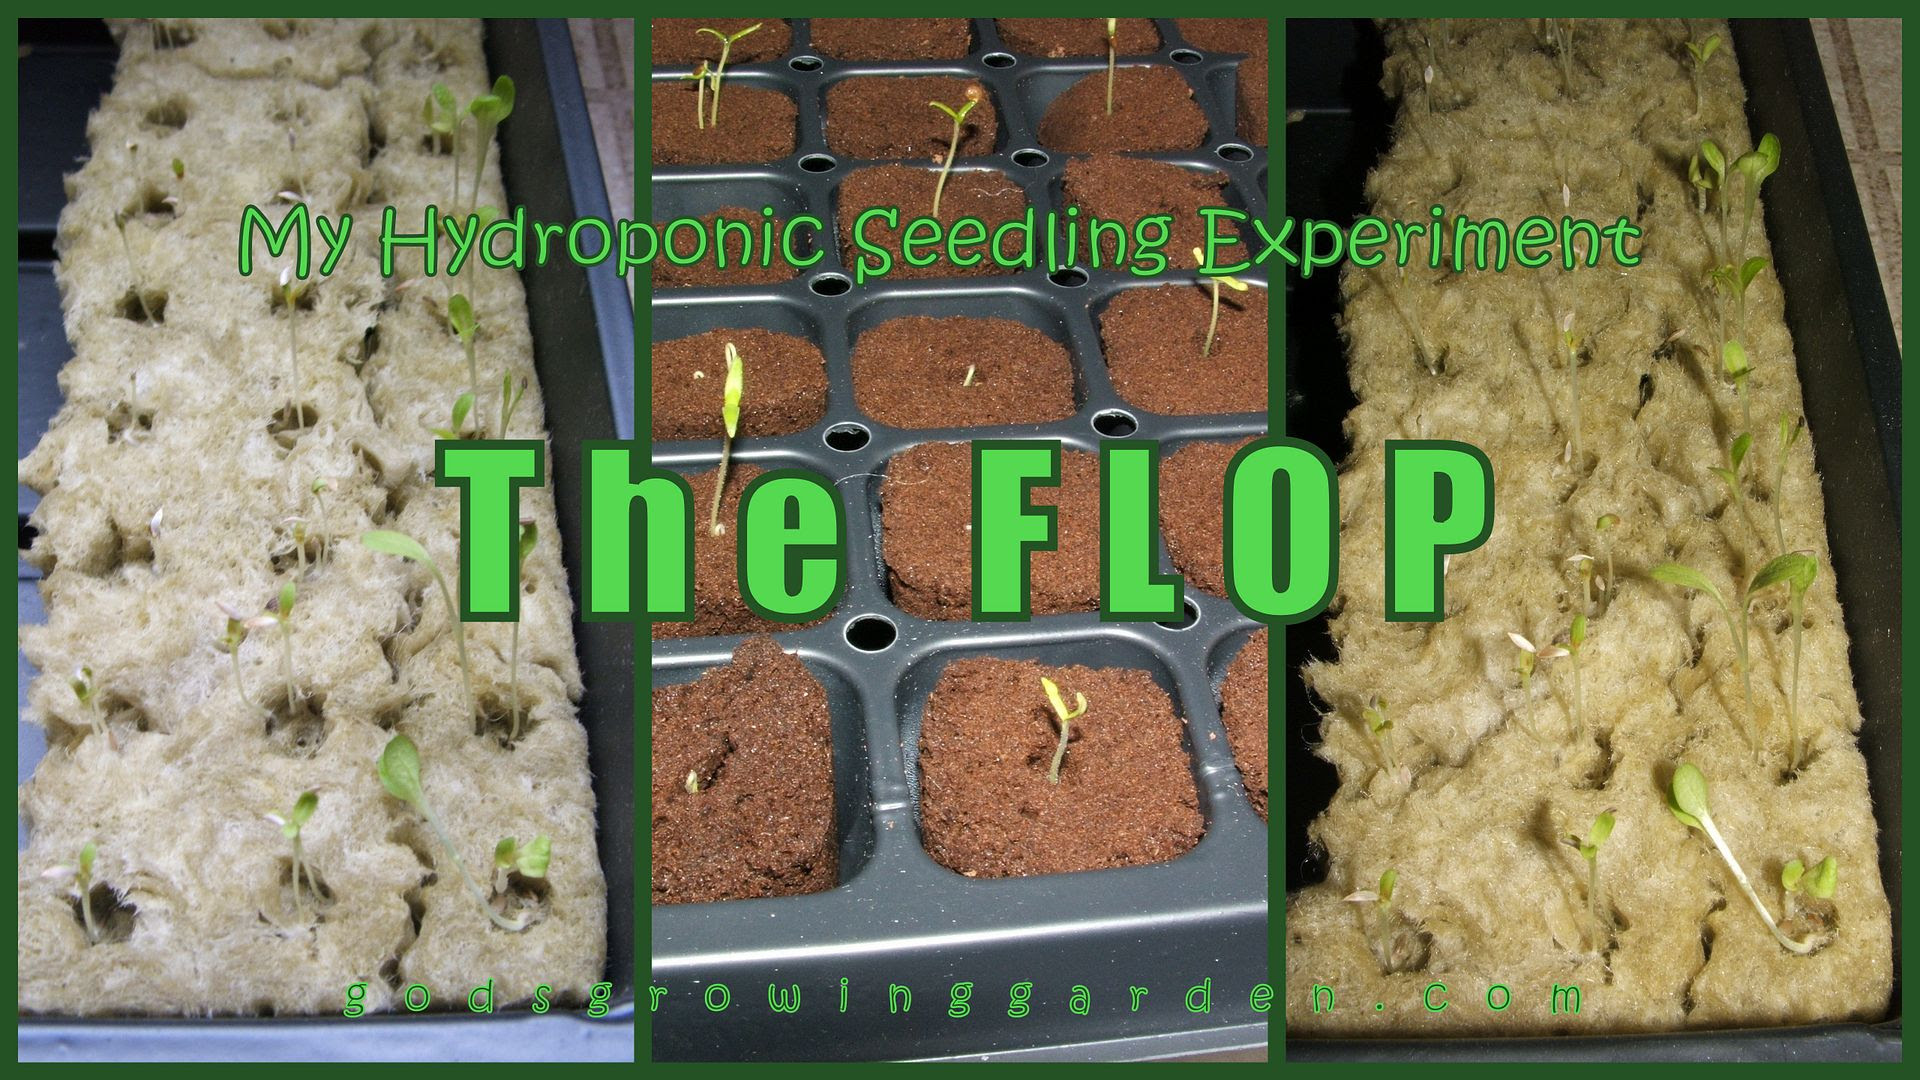 The Flop by Angie Ouellette-Tower for godsgrowinggarden.com photo 2014-03-15_zpsc3c7fe0a.jpg